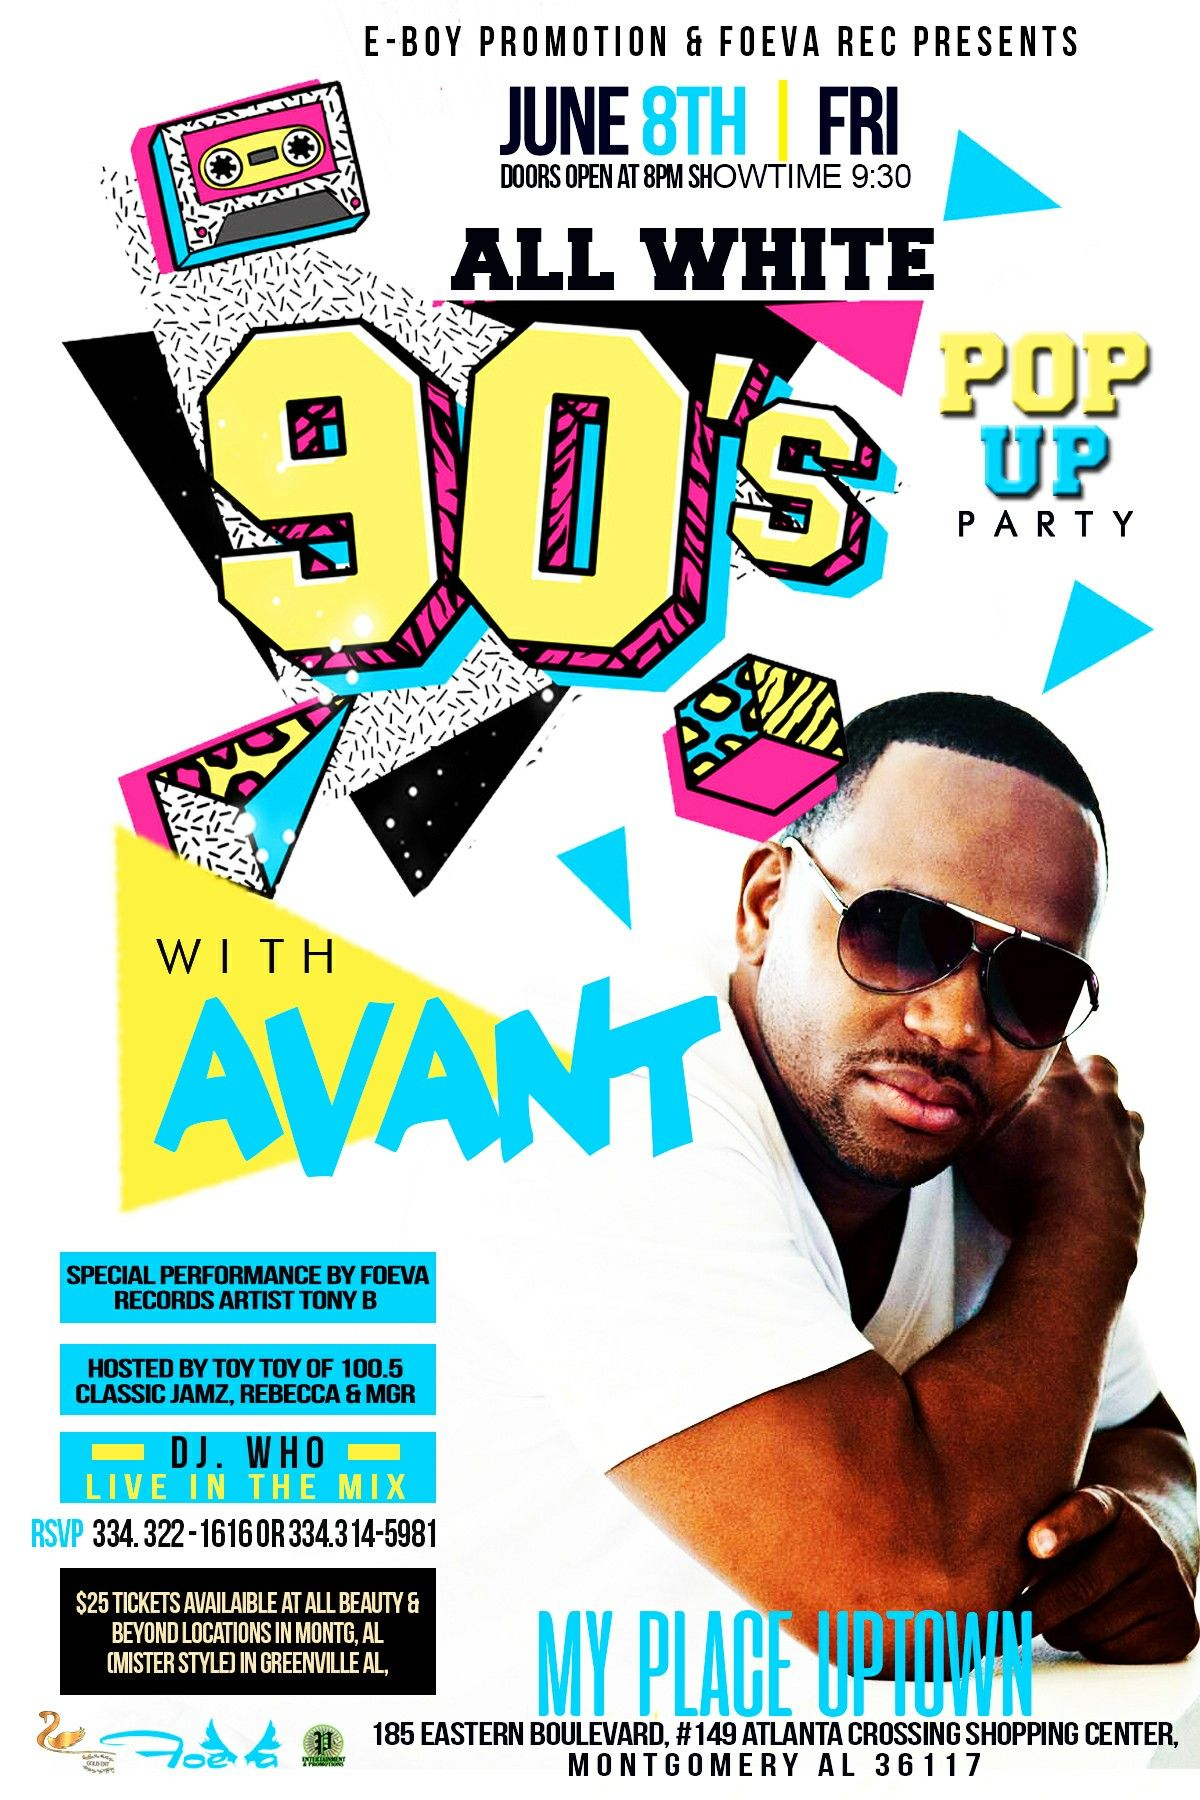 LIMITED AVANT TICKETS LEFT AT BEAUTY &BEYOND IN MONTG, AL